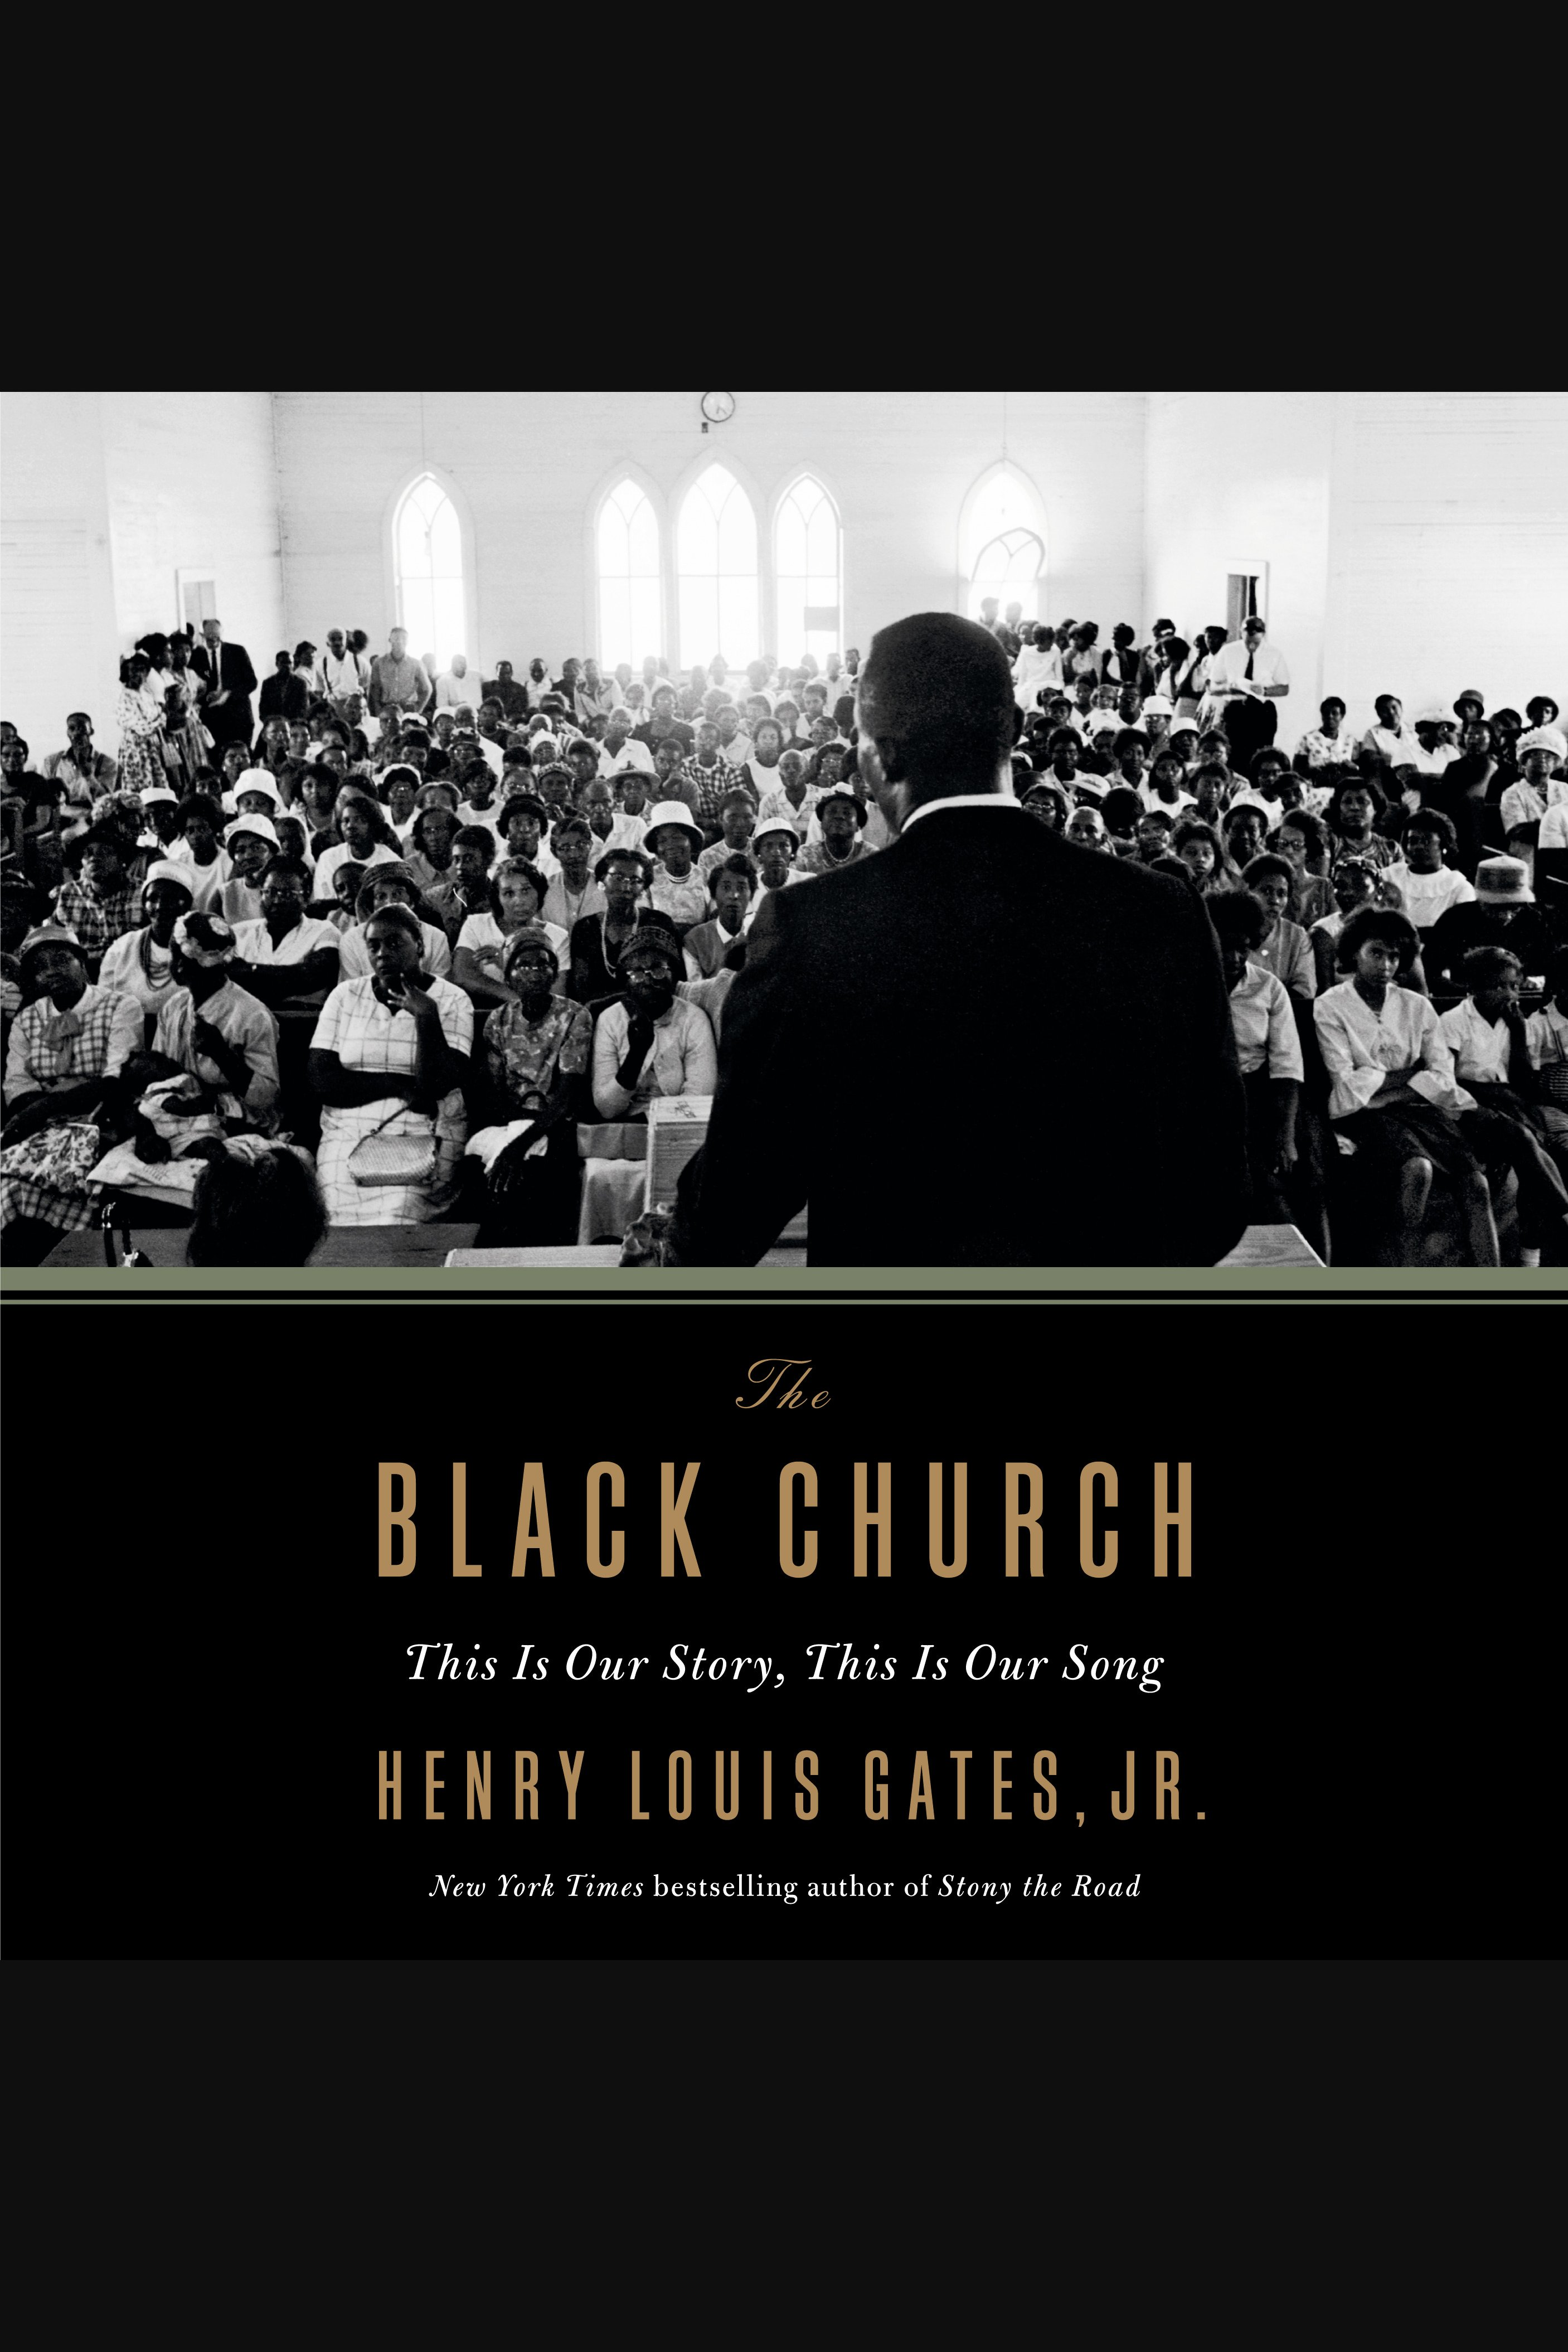 Black Church, The This Is Our Story, This Is Our Song